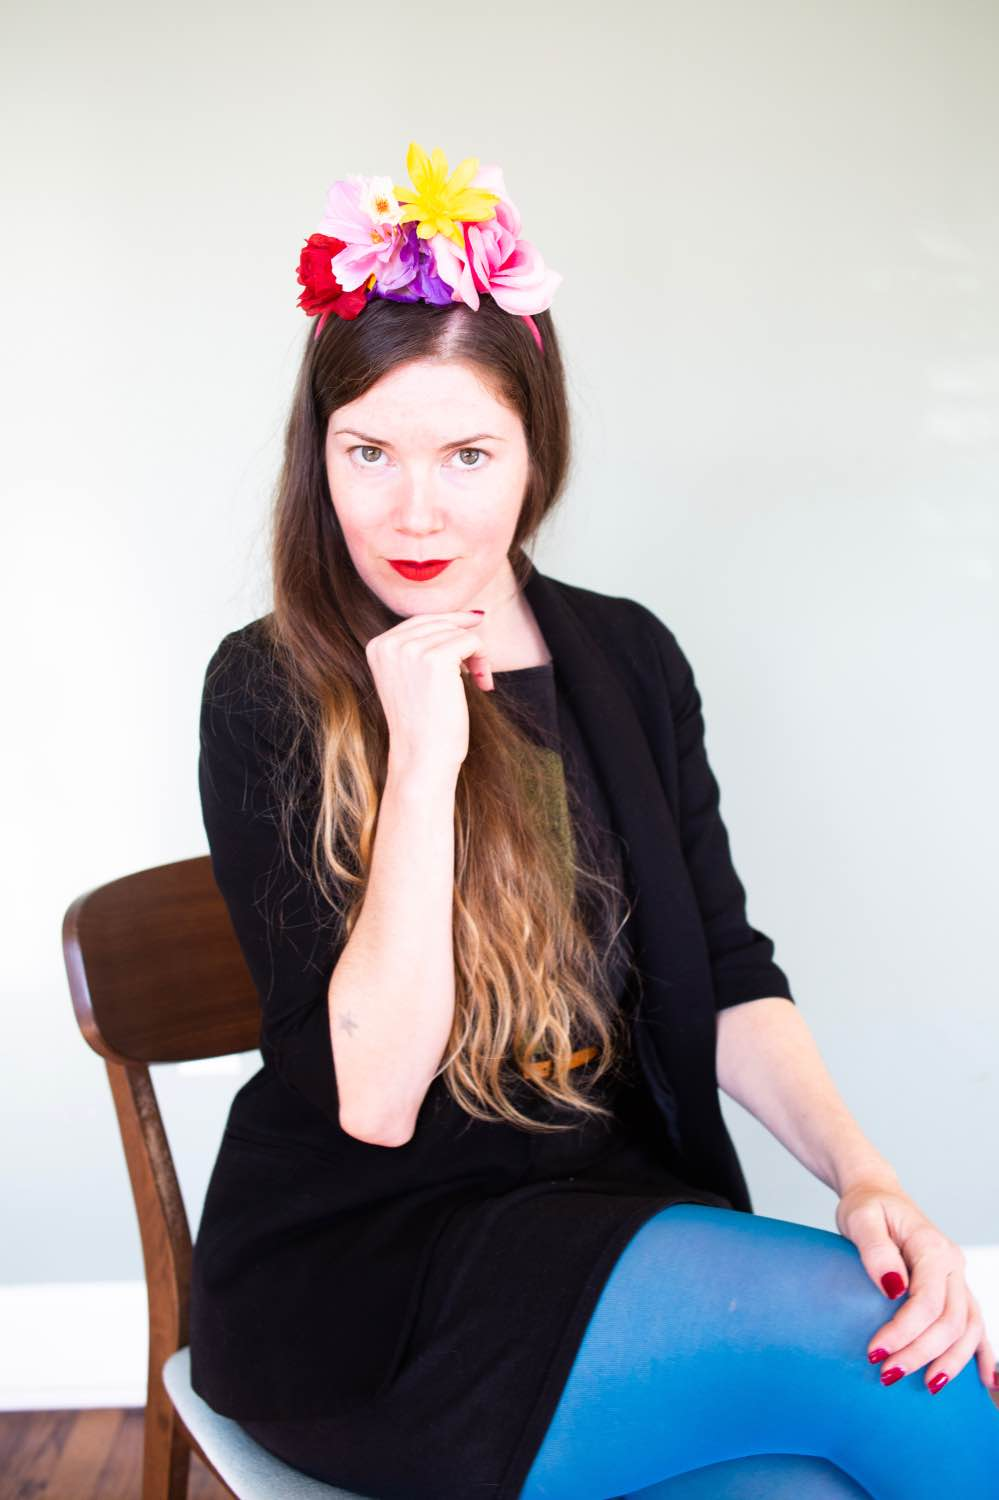 brittany bly wearing a handmade flower crown headband pop shop america